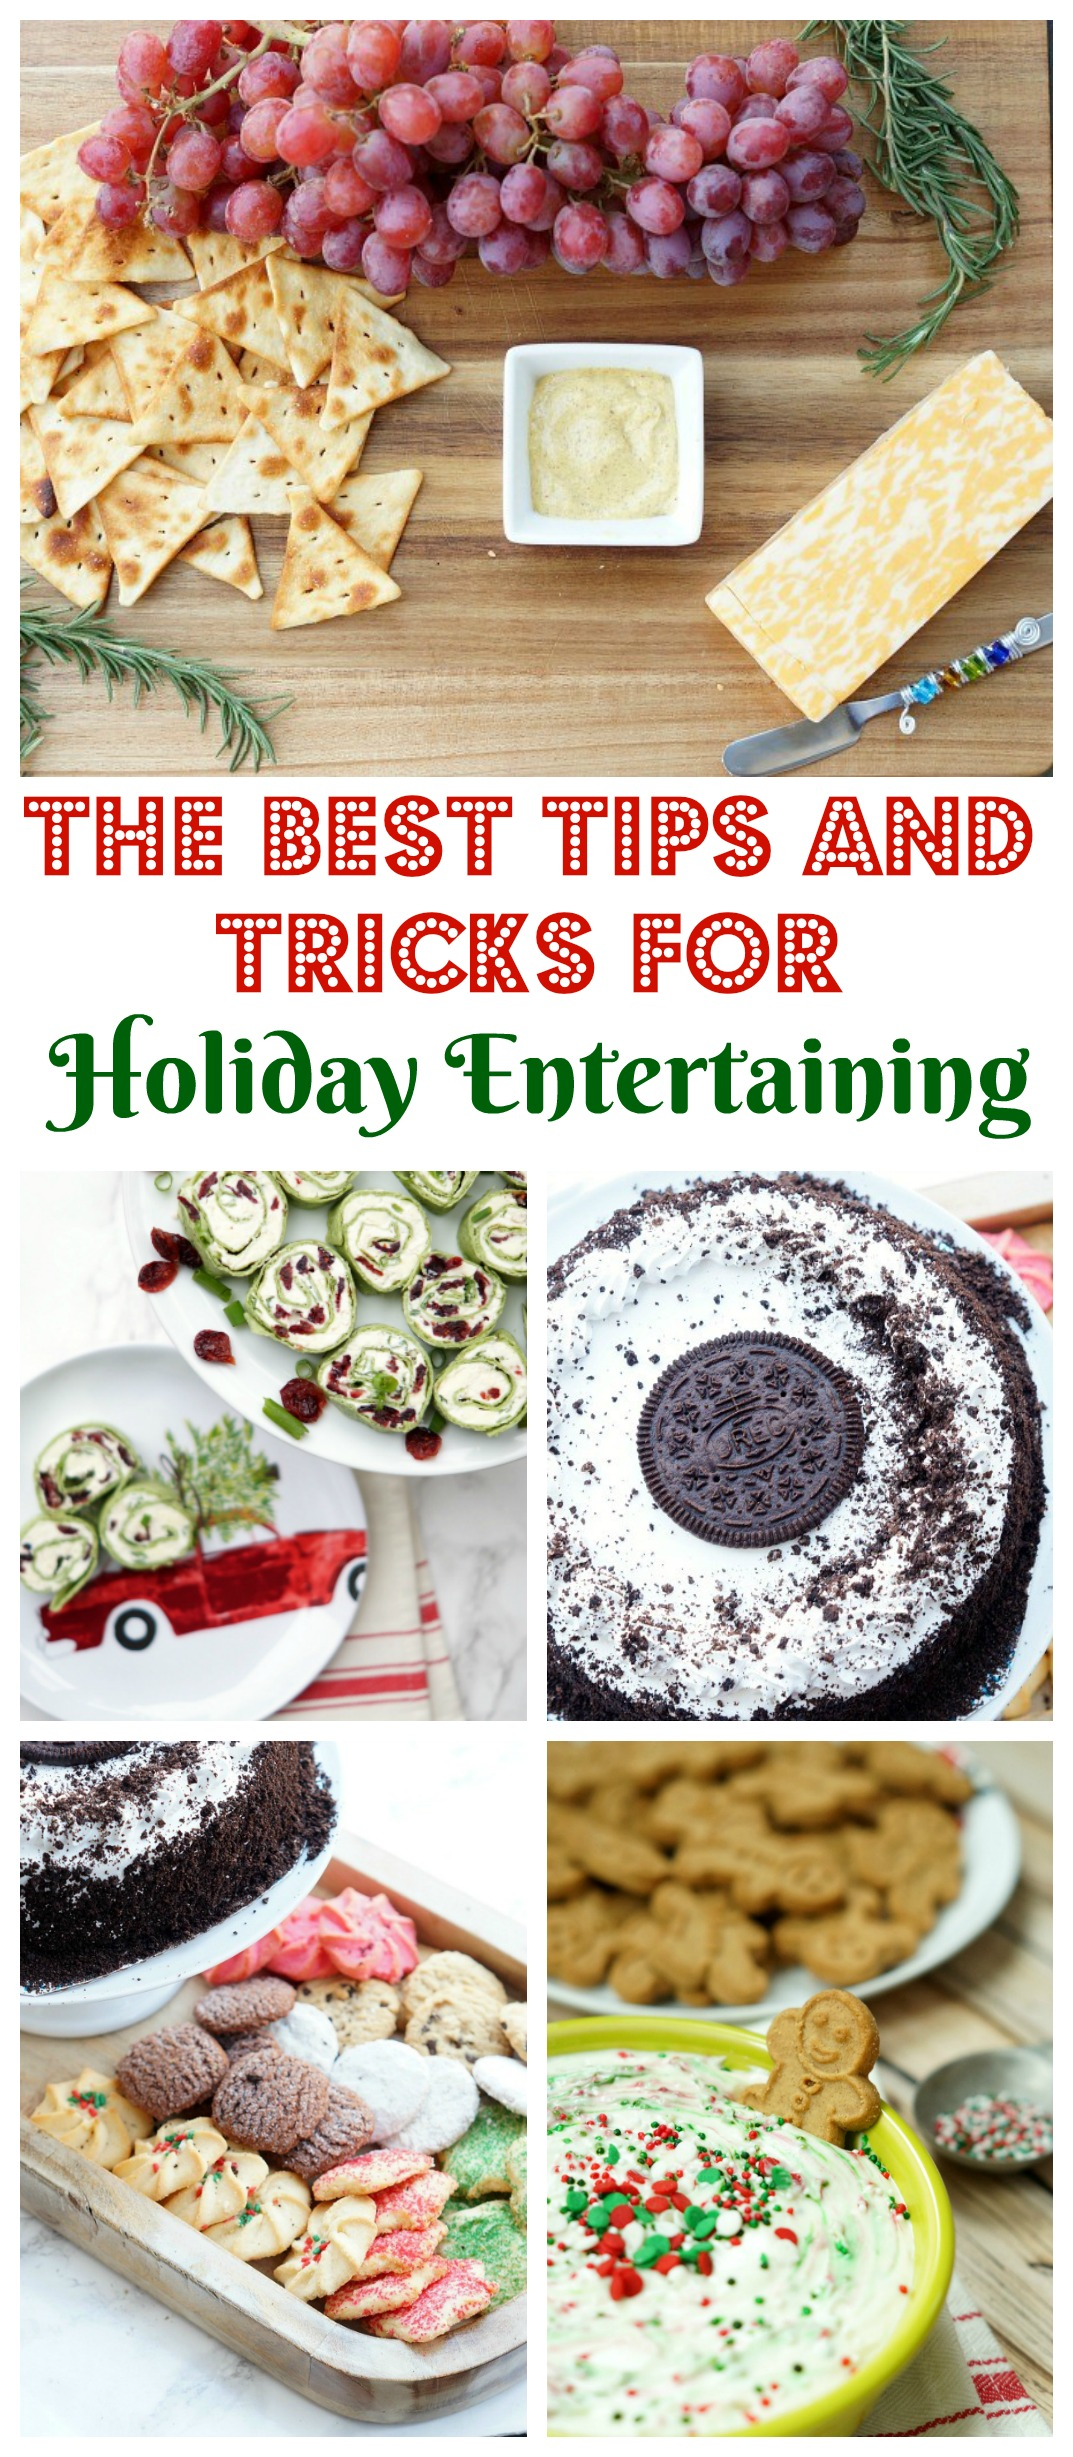 Sharing all my holiday tips and tricks, including my formula for no fail holiday entertaining!